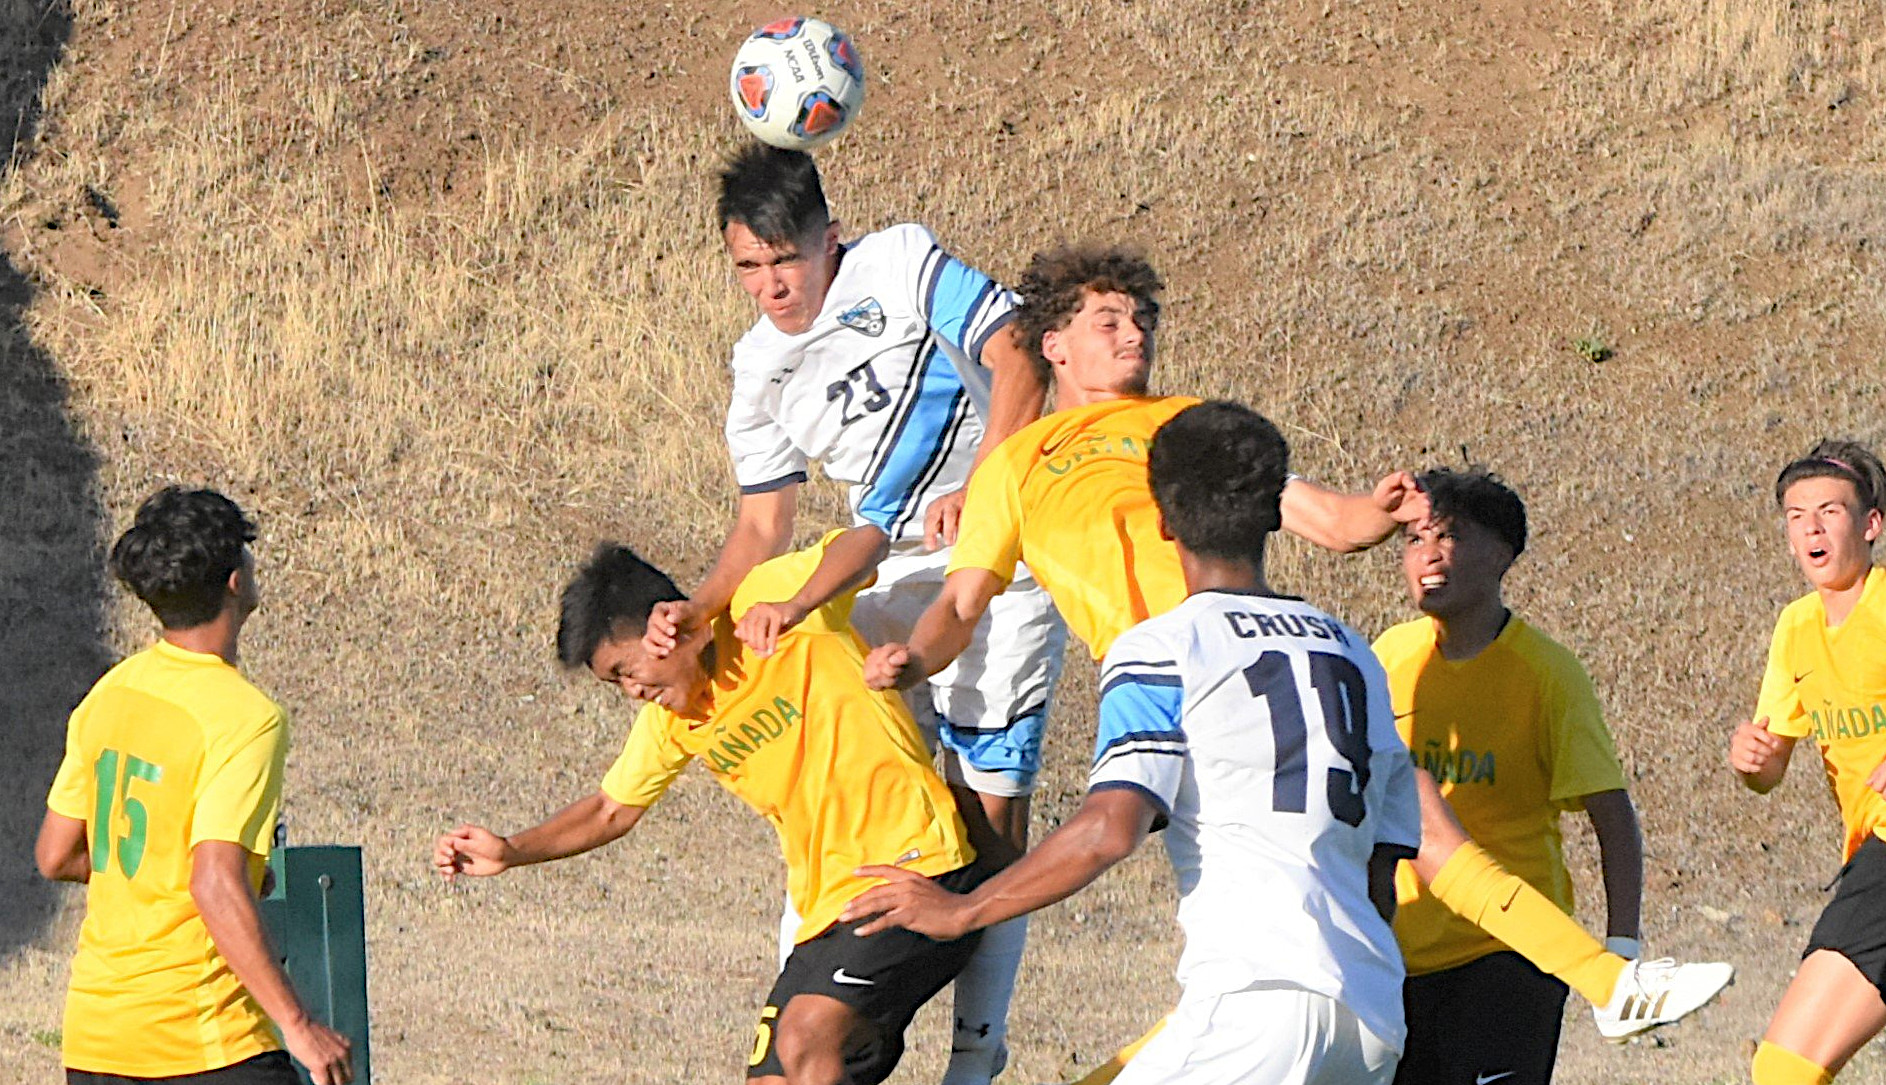 Ryan Rosas goes up for a header in Clovis' 2-1 loss at Cañada. (Photo by Lisa Graham/@ckkmomma)